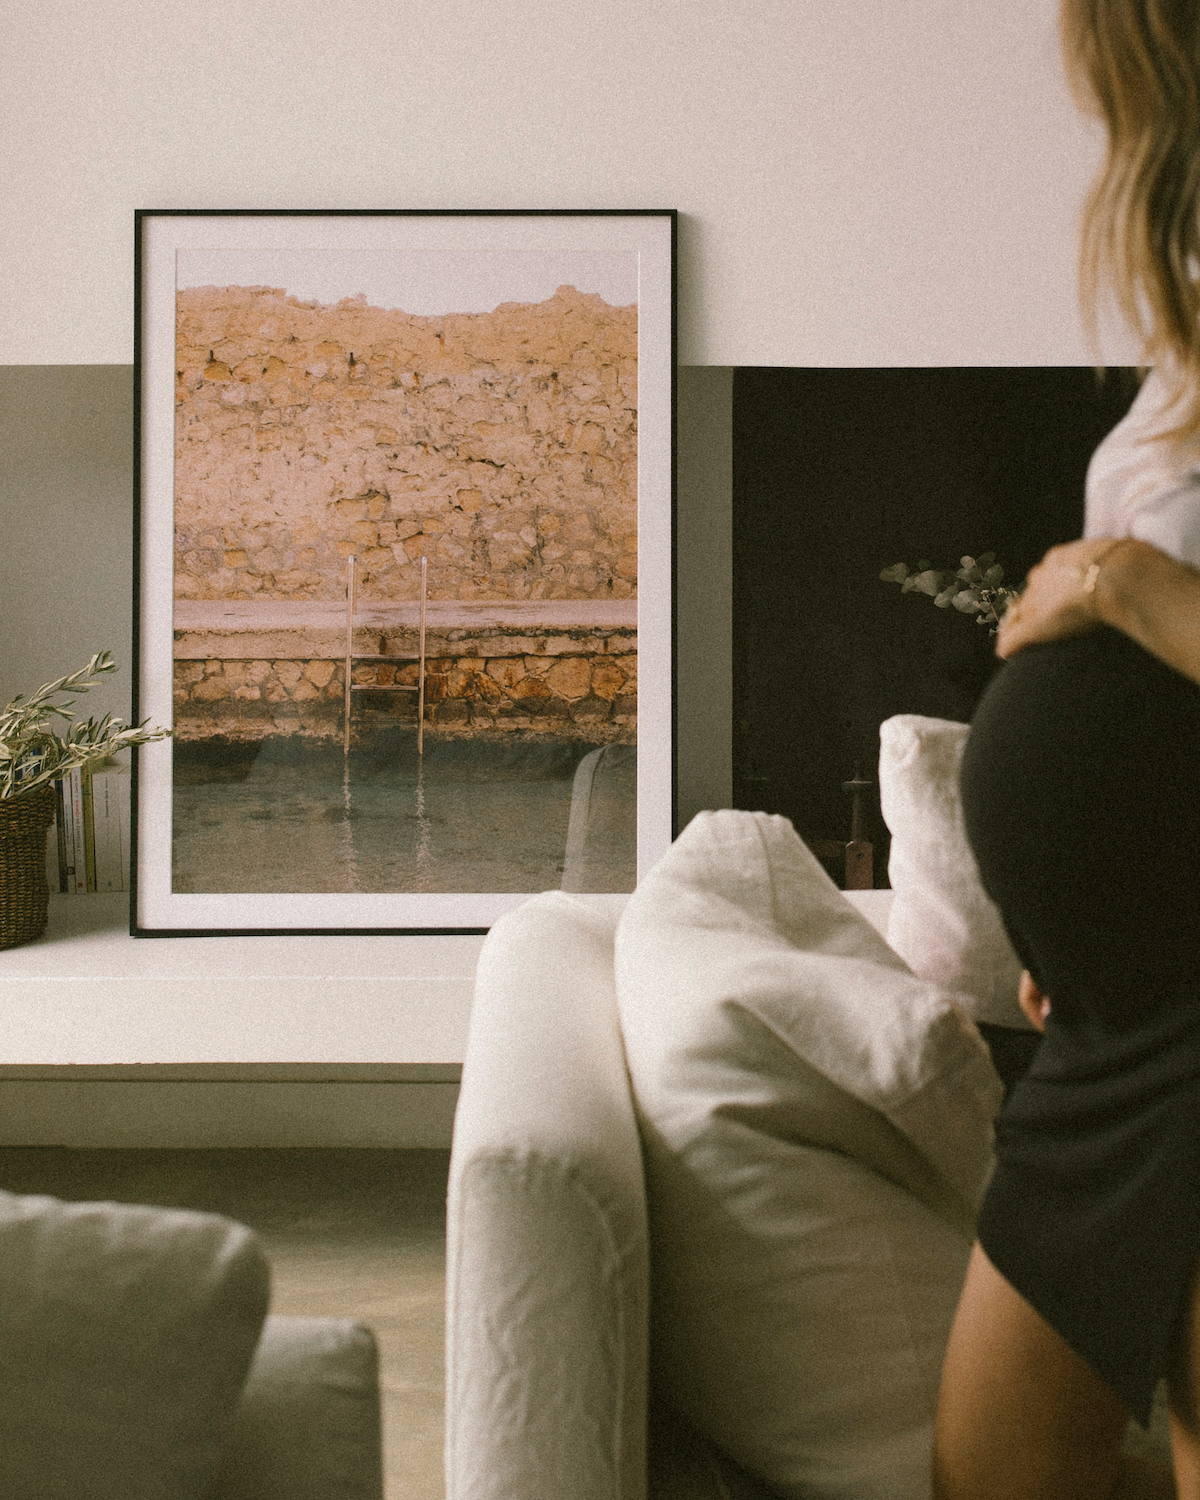 Pregant woman holding belly as she looks at large Artifact Uprising Modern Metal Frame placed on mantel next to fireplace